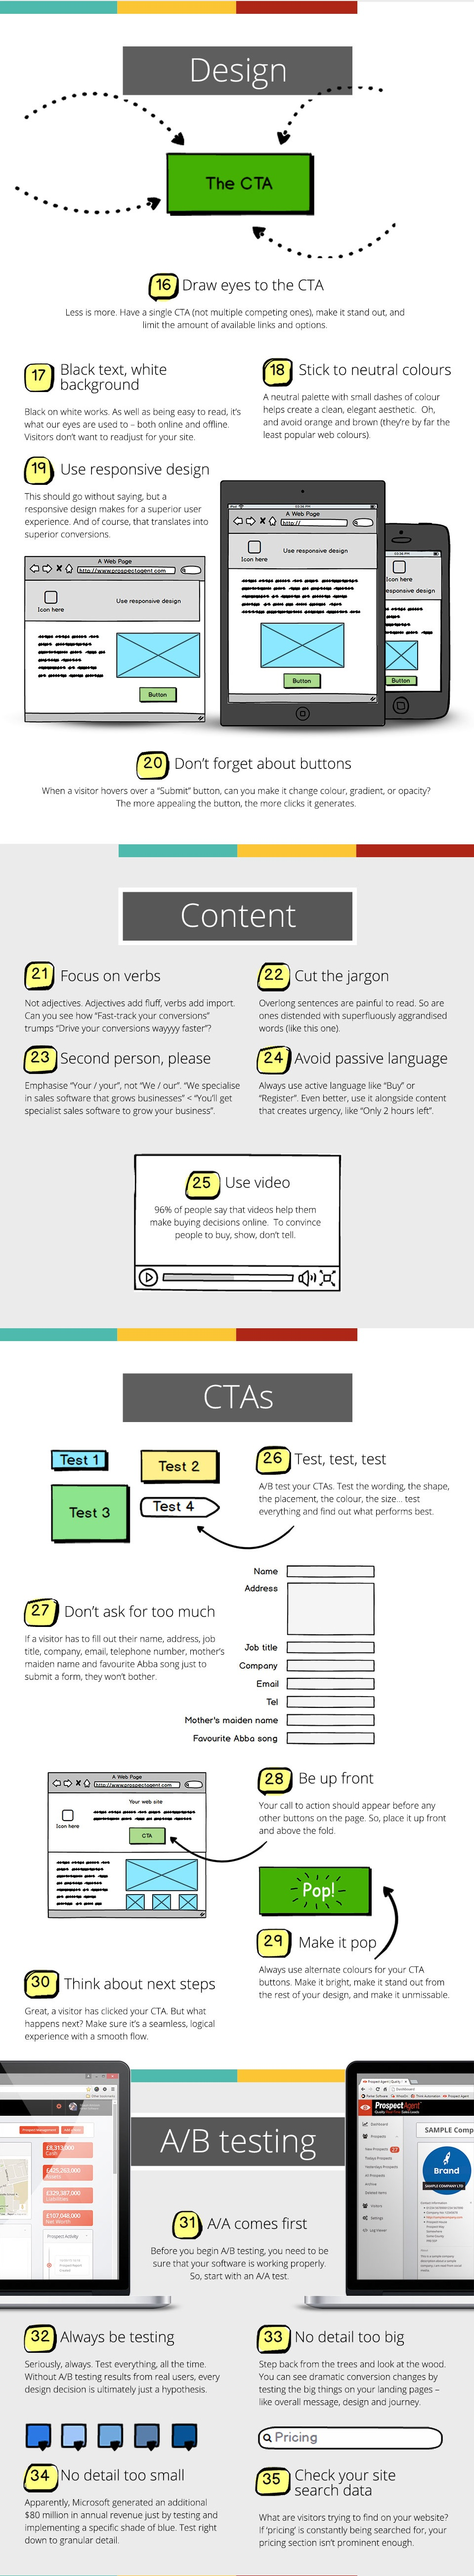 Infographic outlines tips to improve your website conversions